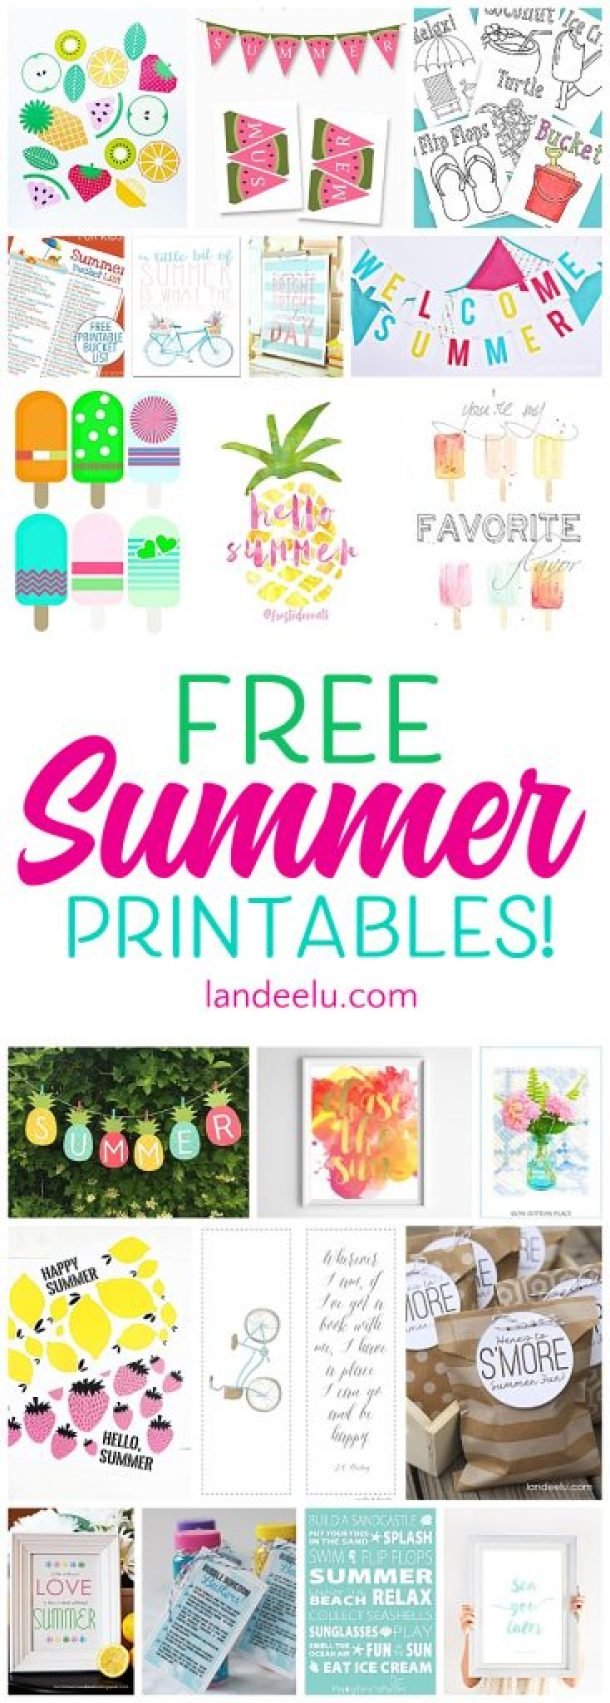 Awesome collection of free summer printables!  Games, banners, bucket lists and more.  So fun!